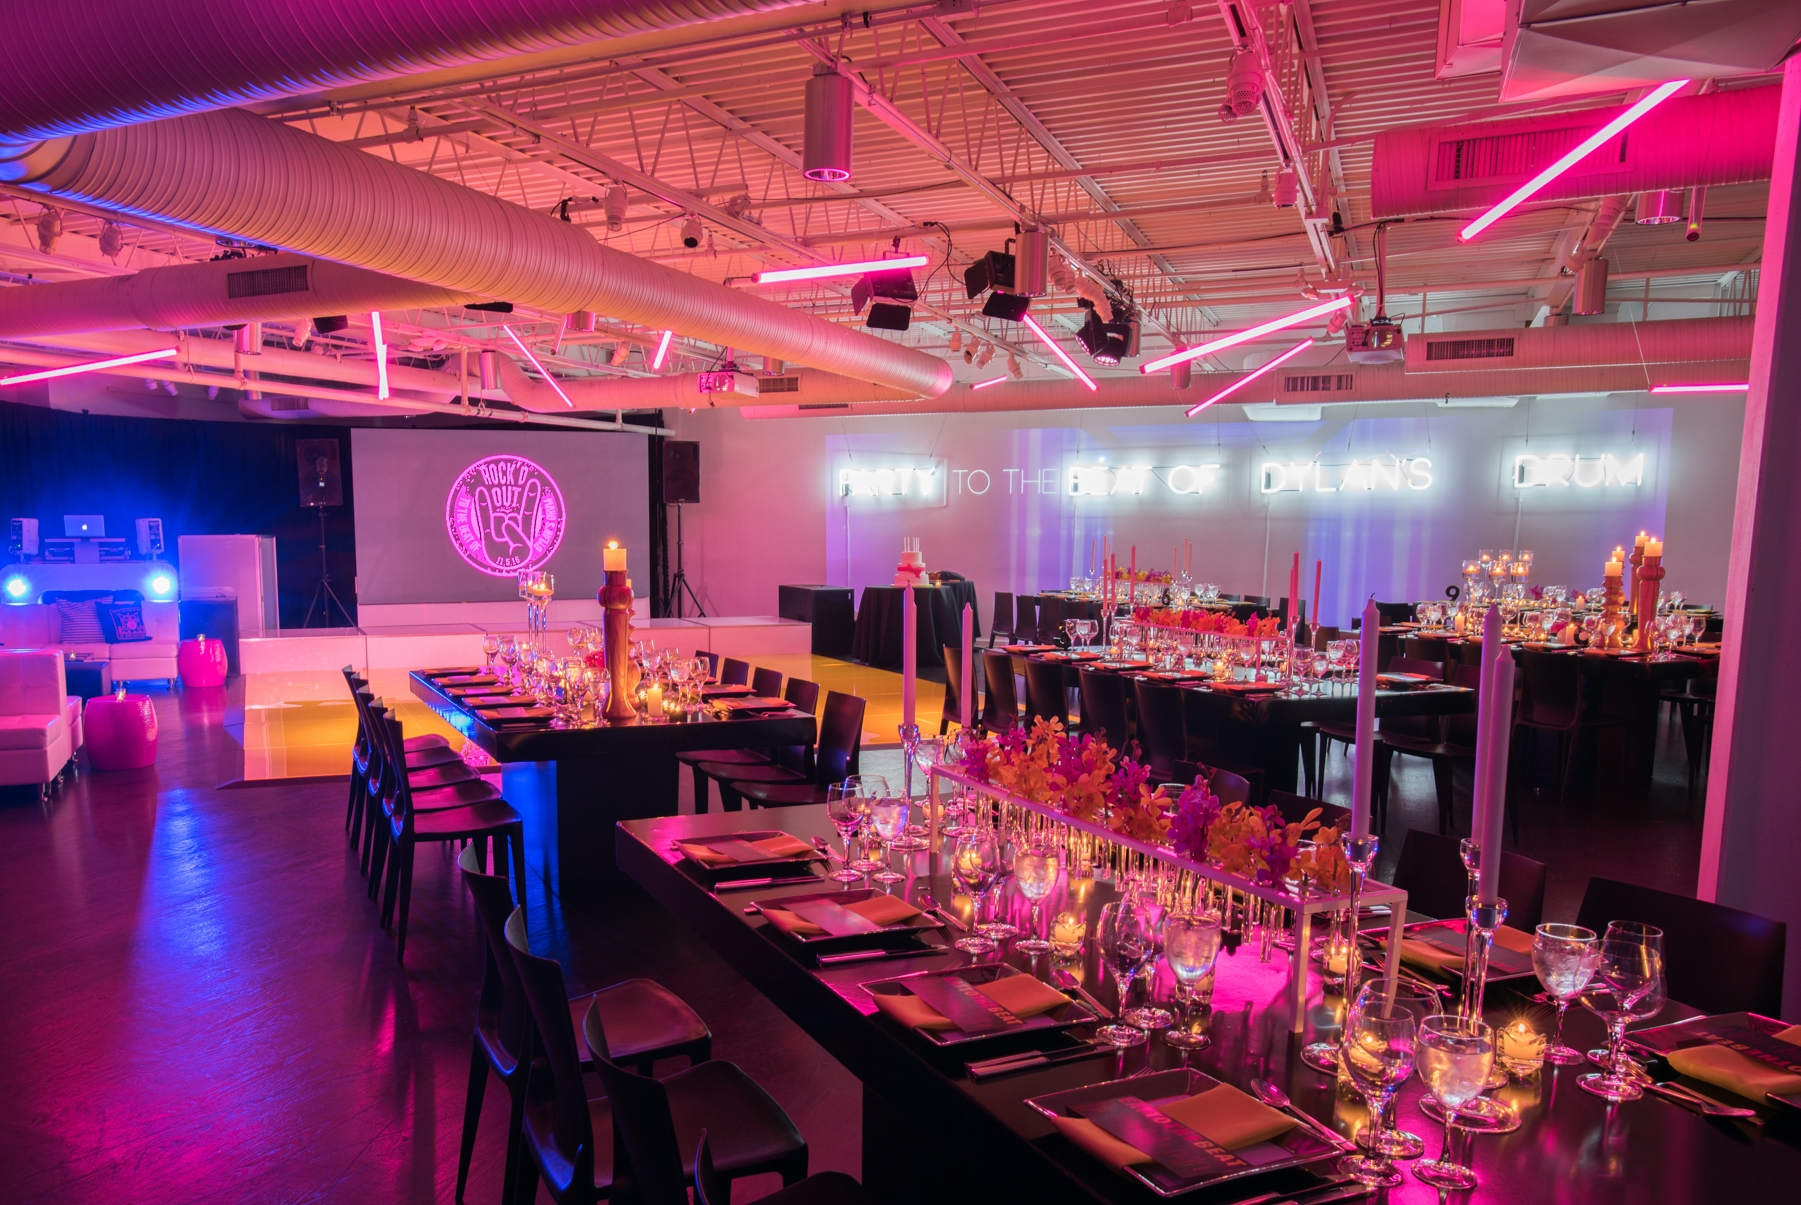 NEON NIGHTS - Venue: The Loading Dock, Stamford, CTPhotography: Tripp Street Studio